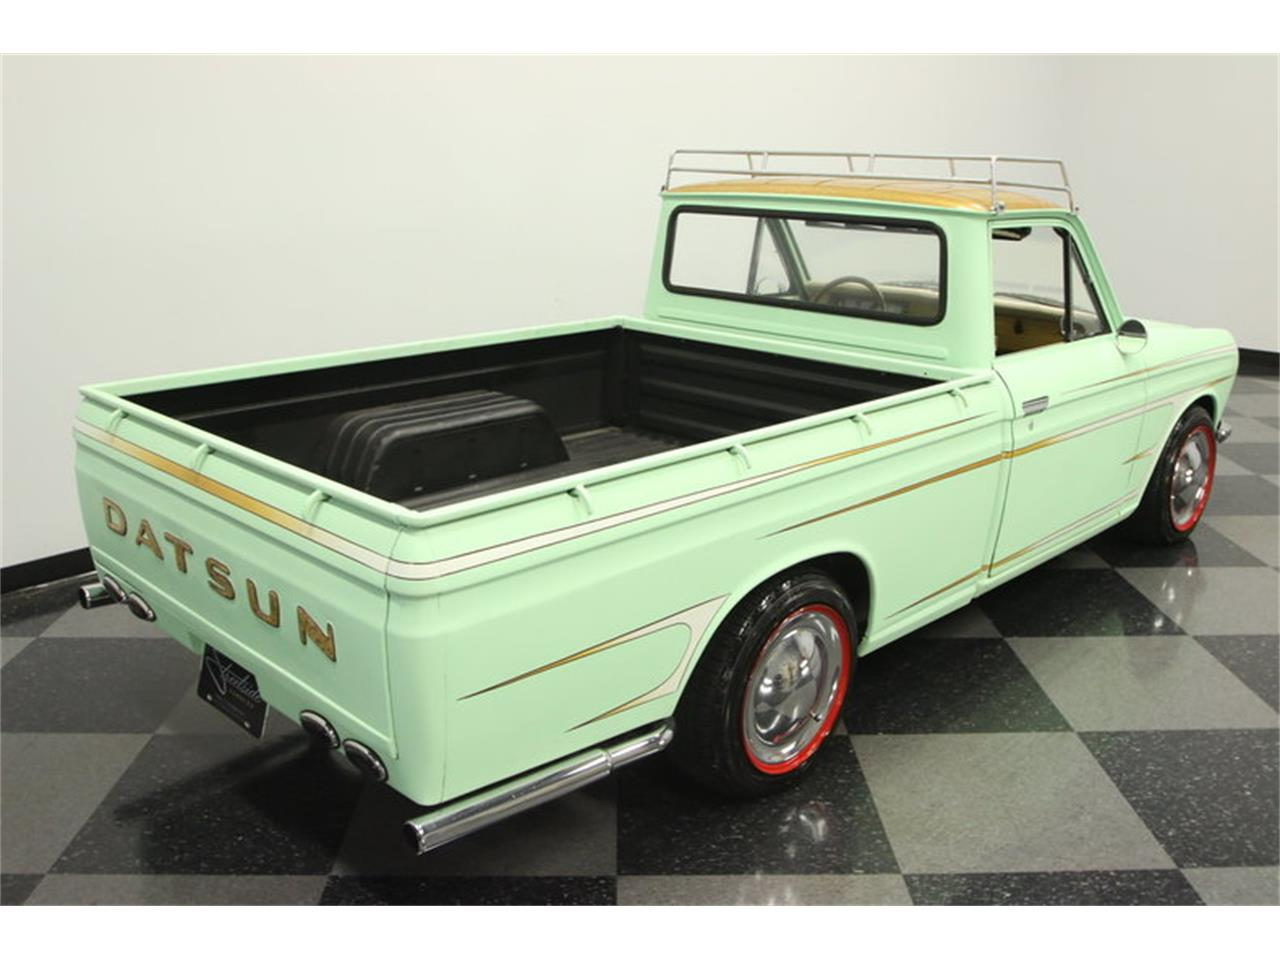 Large Picture of '72 Datsun 1600 520 Pickup - $9,995.00 Offered by Streetside Classics - Tampa - MB90